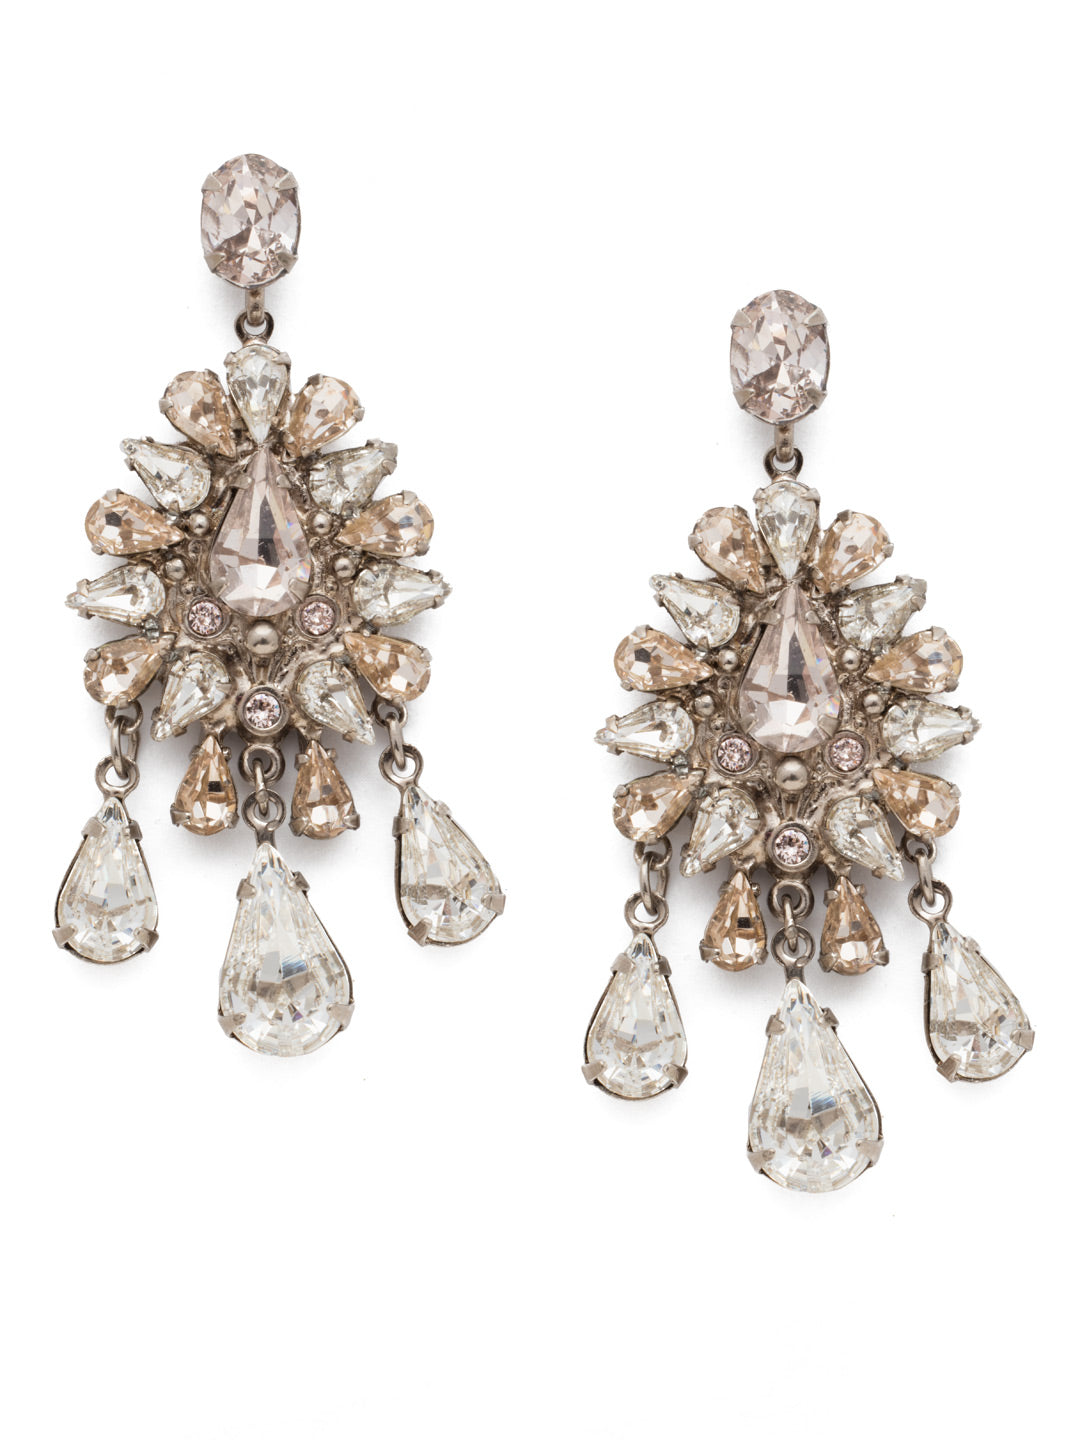 Dripping In Crystals Chandelier Earring - ECK20ASPLS